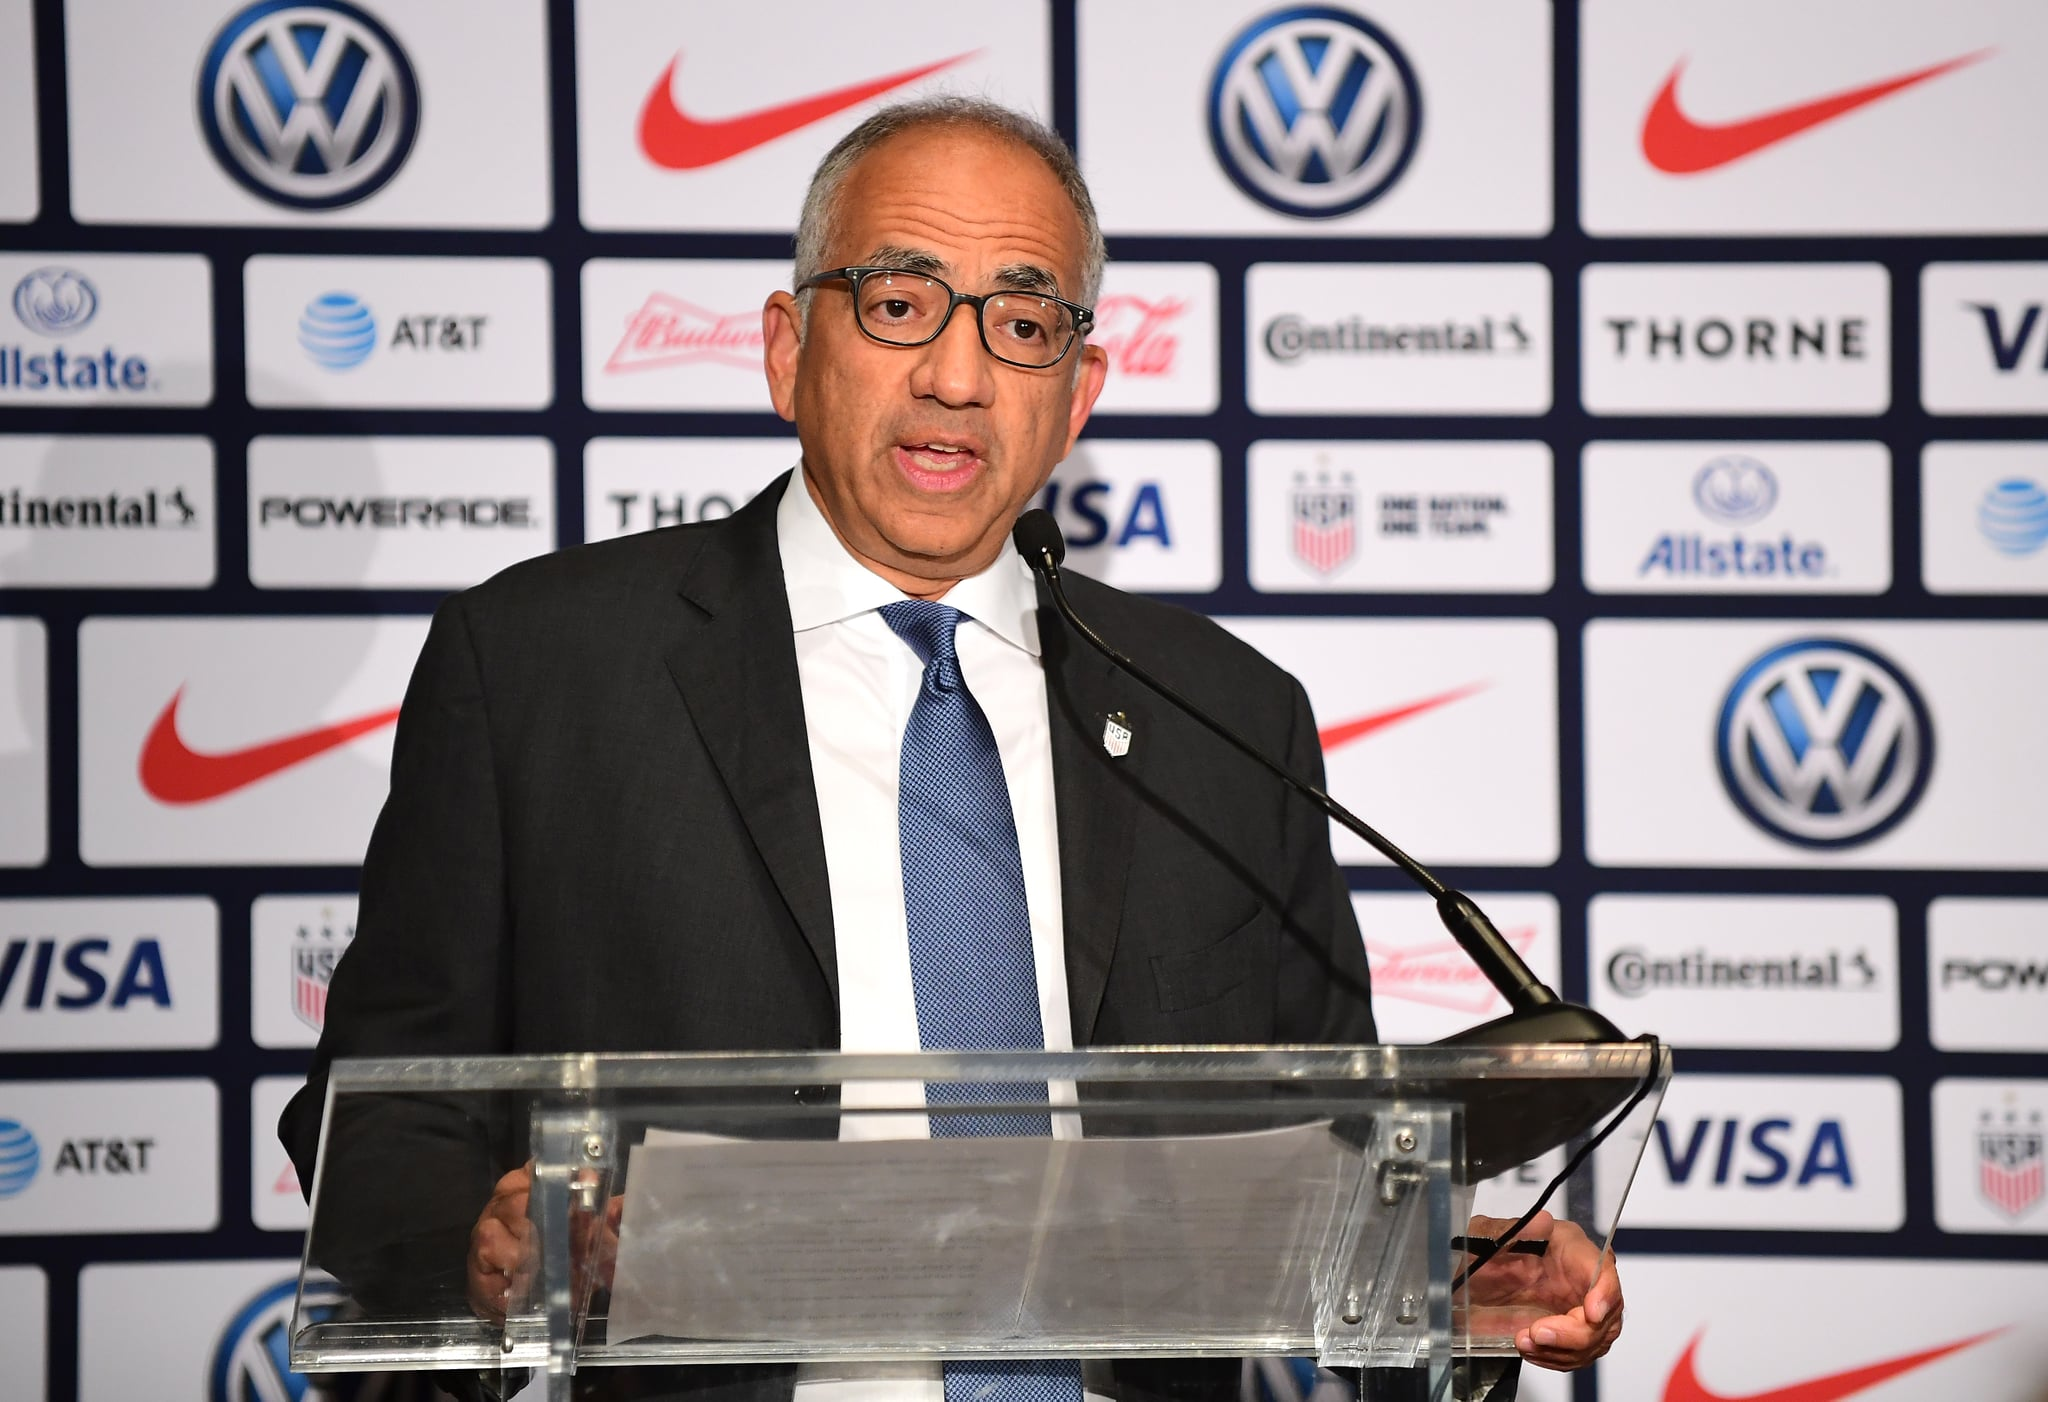 NEW YORK, NEW YORK - OCTOBER 28: Carlos Cordeiro, U.S. Football President,  speaks at a press conference where Vlatko Andonovski was introduced as the U.S. Women's National Team head coach, at Kimpton Hotel Eventi on October 28, 2019 in New York City. (Photo by Emilee Chinn/Getty Images)